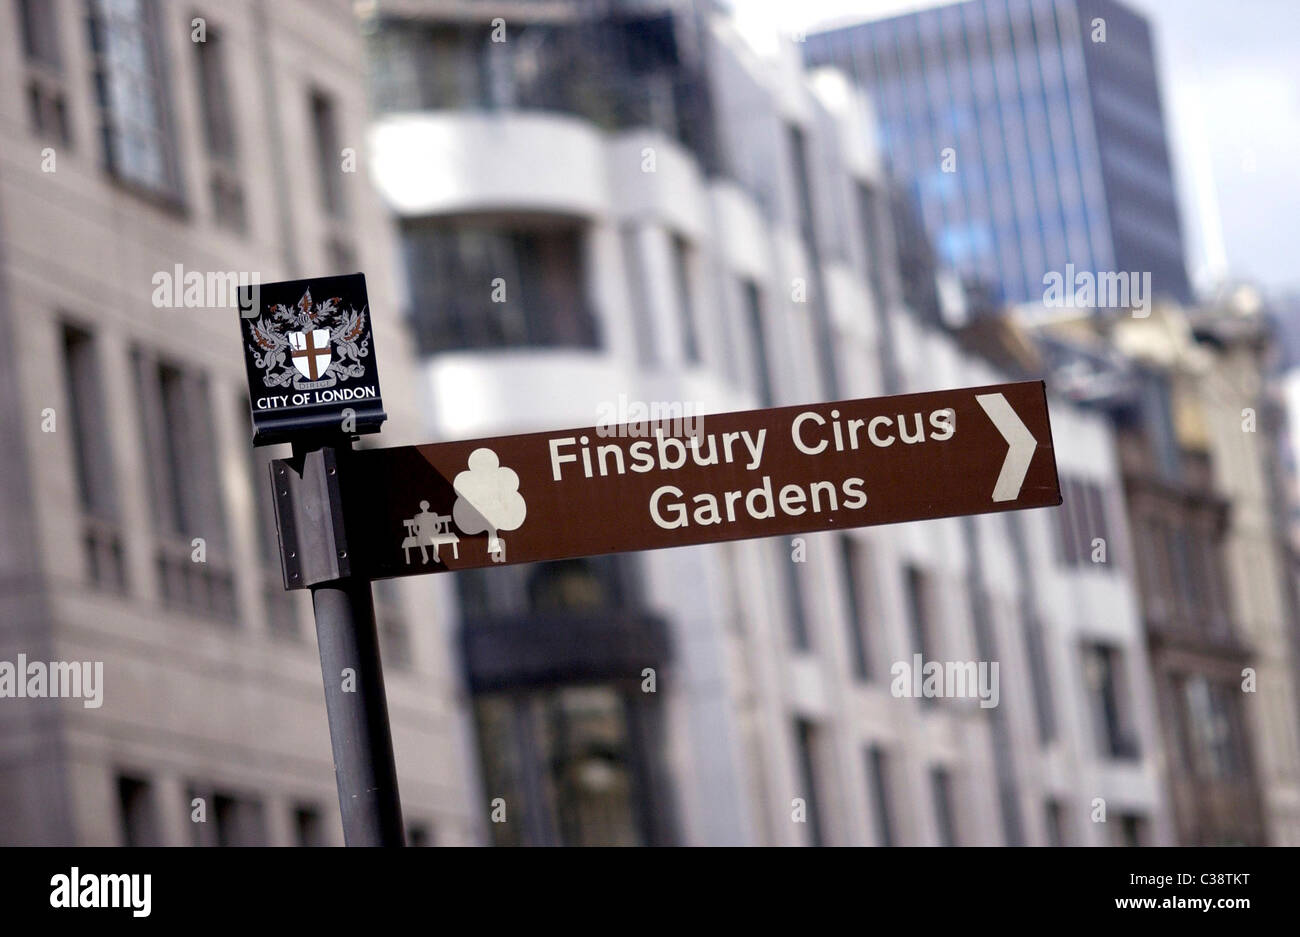 Picture shows a City of London sign in Central London. - Stock Image